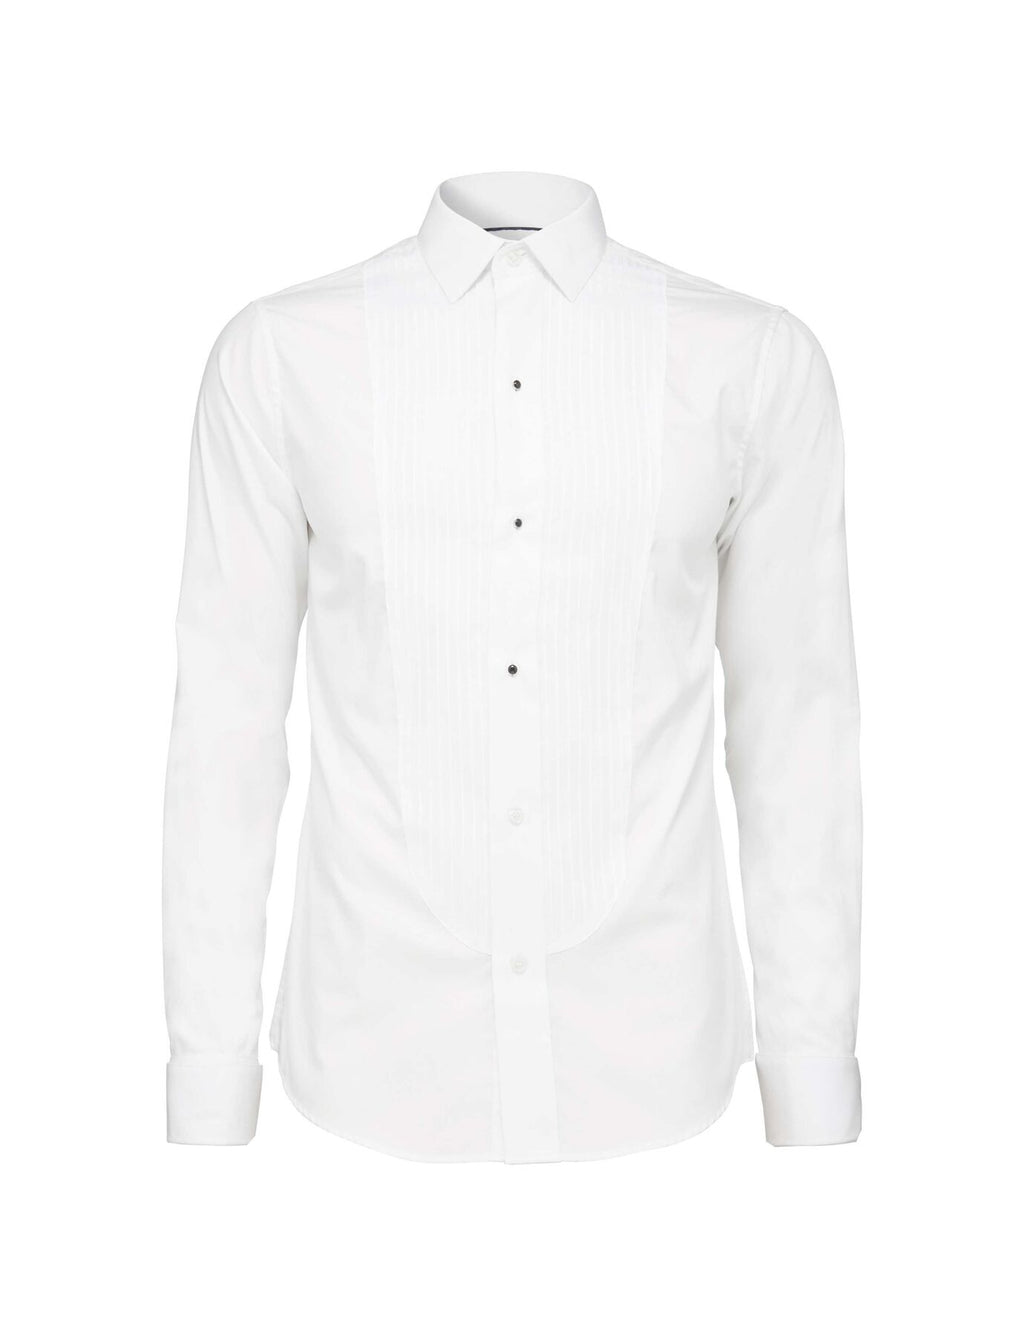 anstice shirt pure white t62637018 Tiger of Sweden